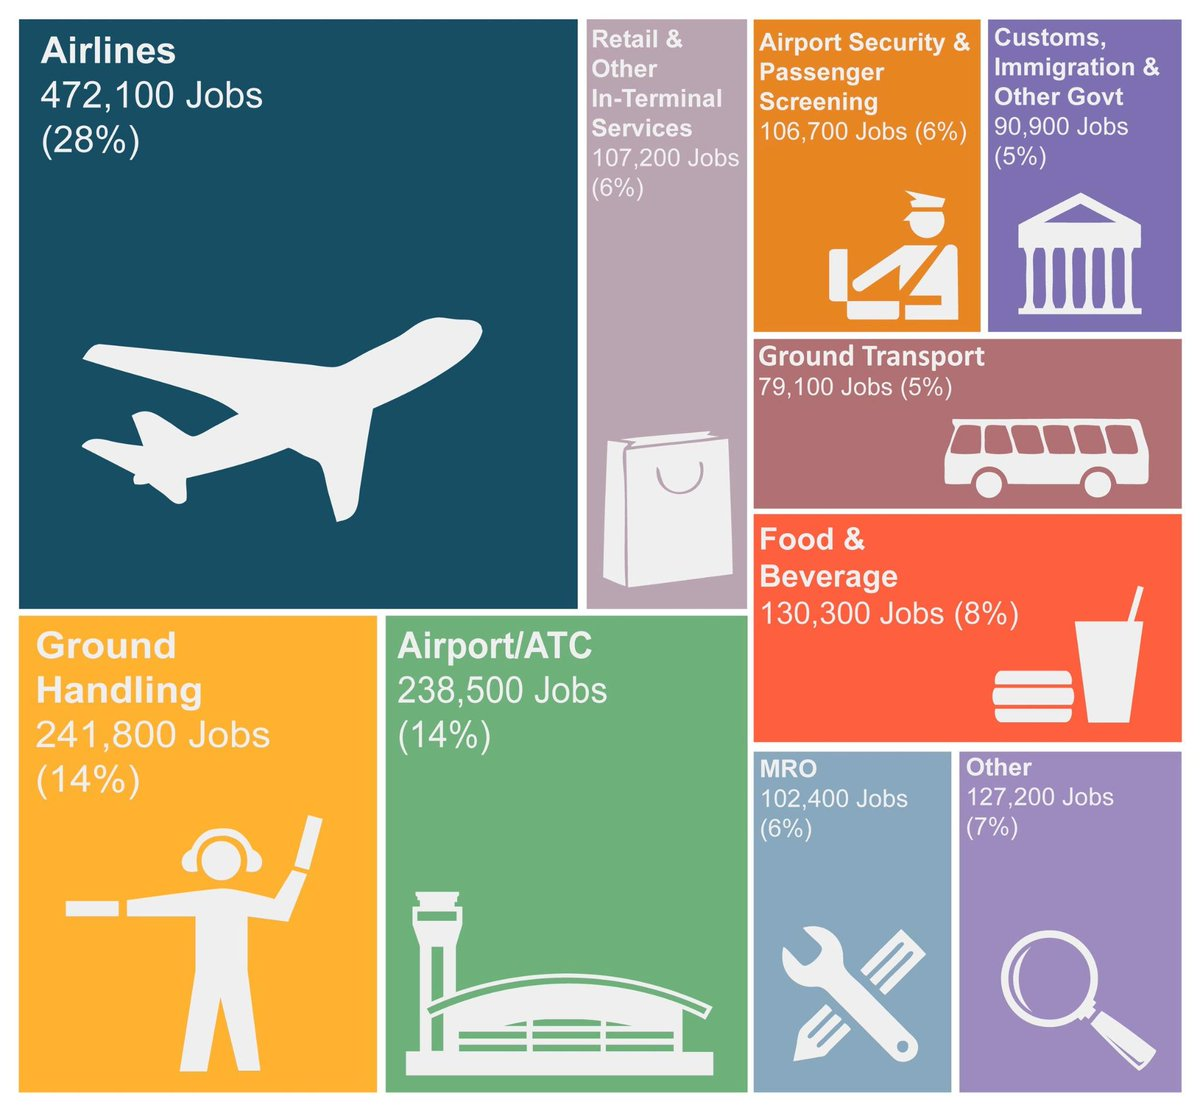 Check out the new study on the direct, indirect, induced & catalytic impacts of airports here